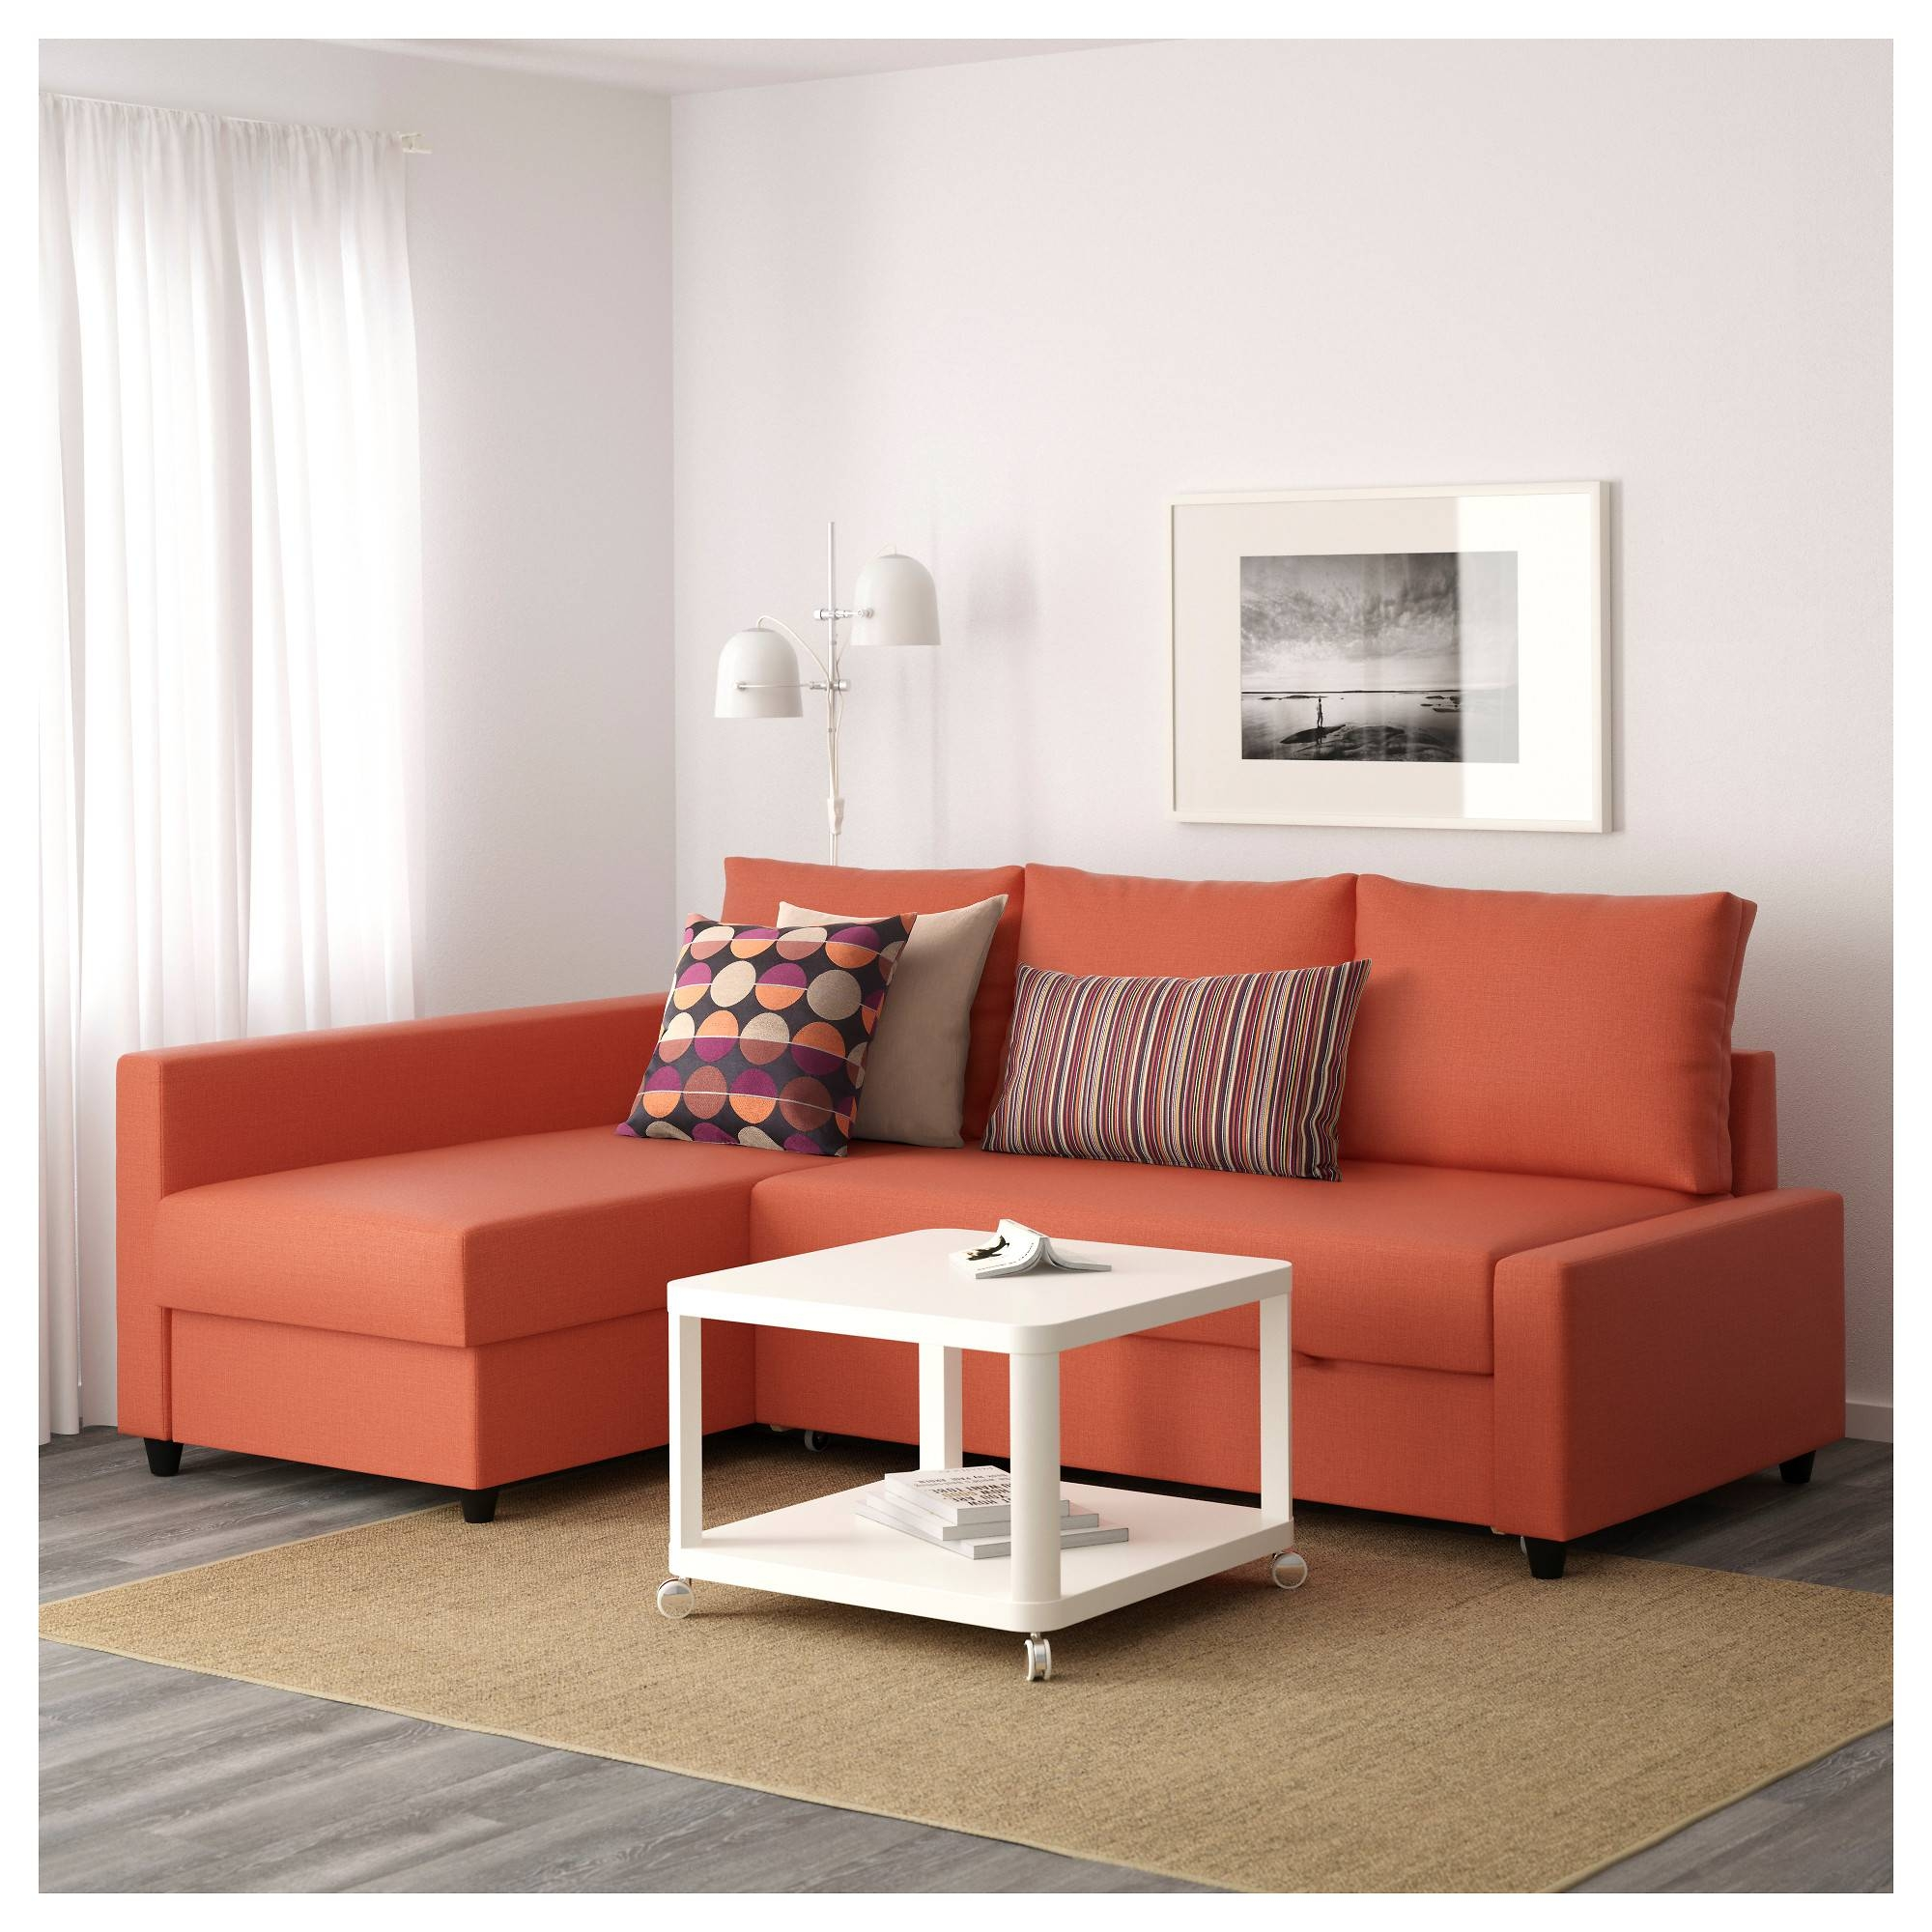 Friheten Corner Sofa-Bed With Storage Skiftebo Dark Orange - Ikea regarding Orange Ikea Sofas (Image 10 of 30)